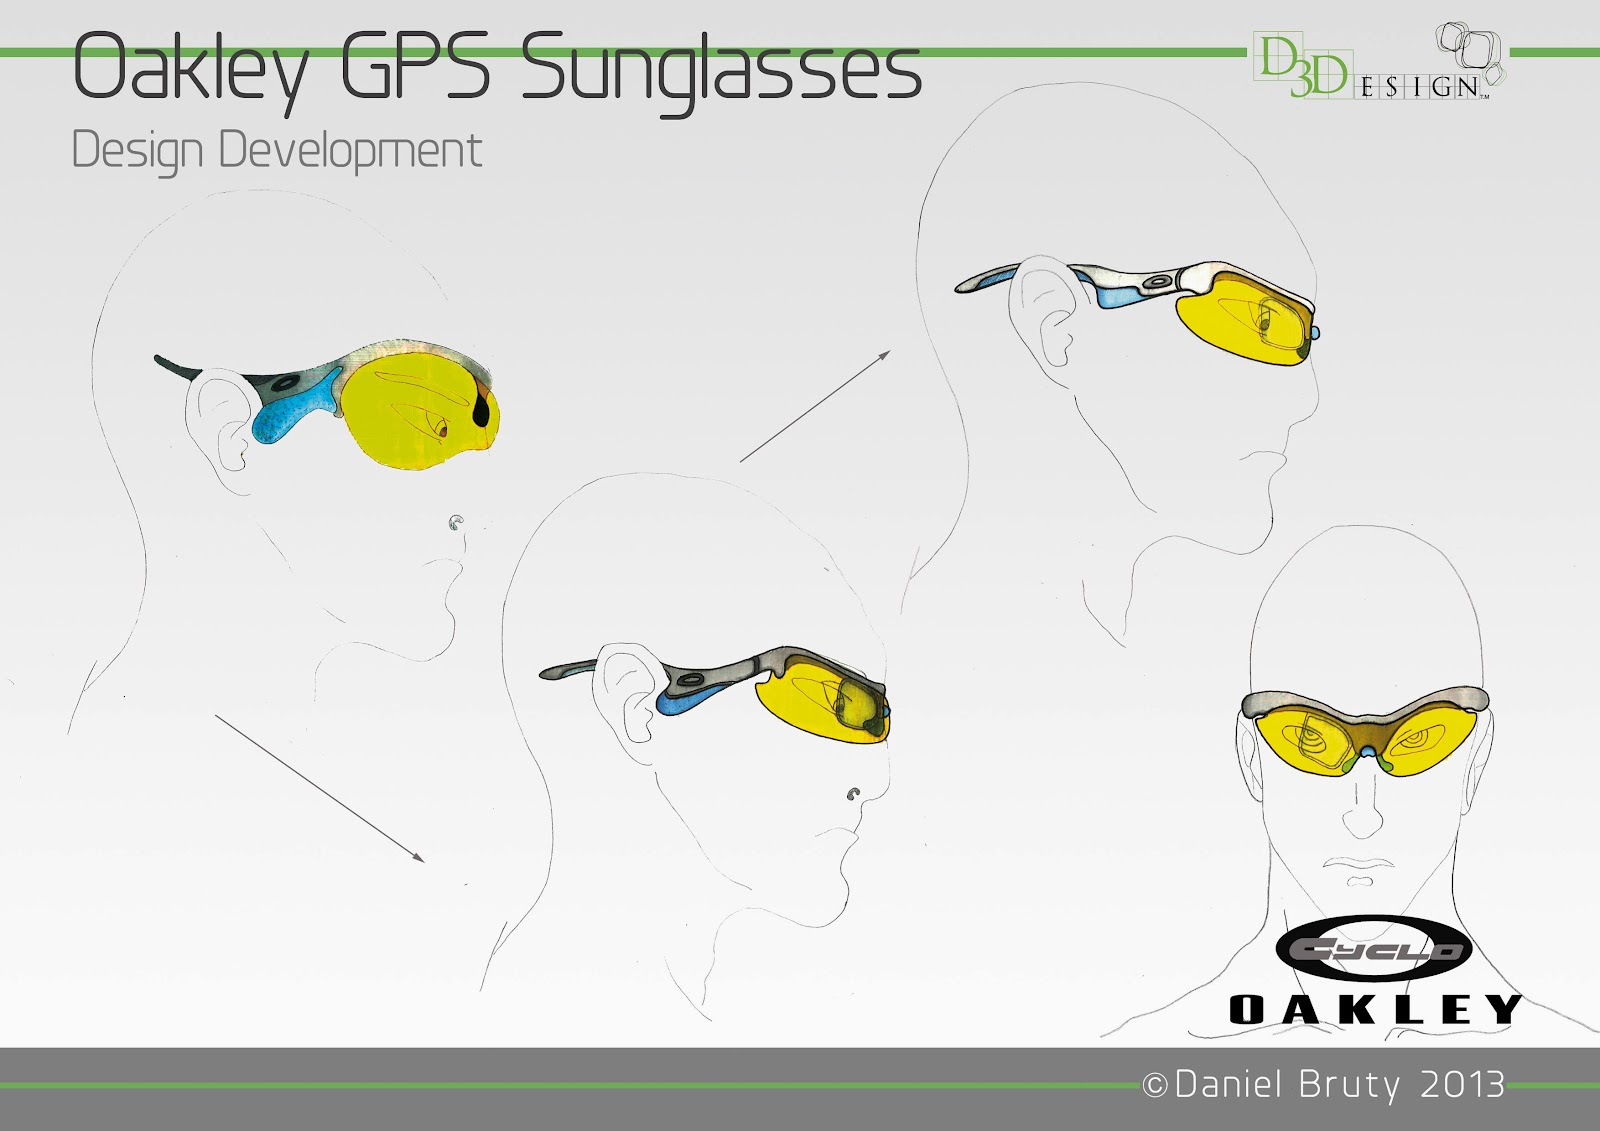 design oakley sunglasses kutx  Oakley Cyclo Sunglasses Cycling is a wonderful activity for so many  reasons It saves on fuel consumption, doesn't add pollution to the air, is  economical